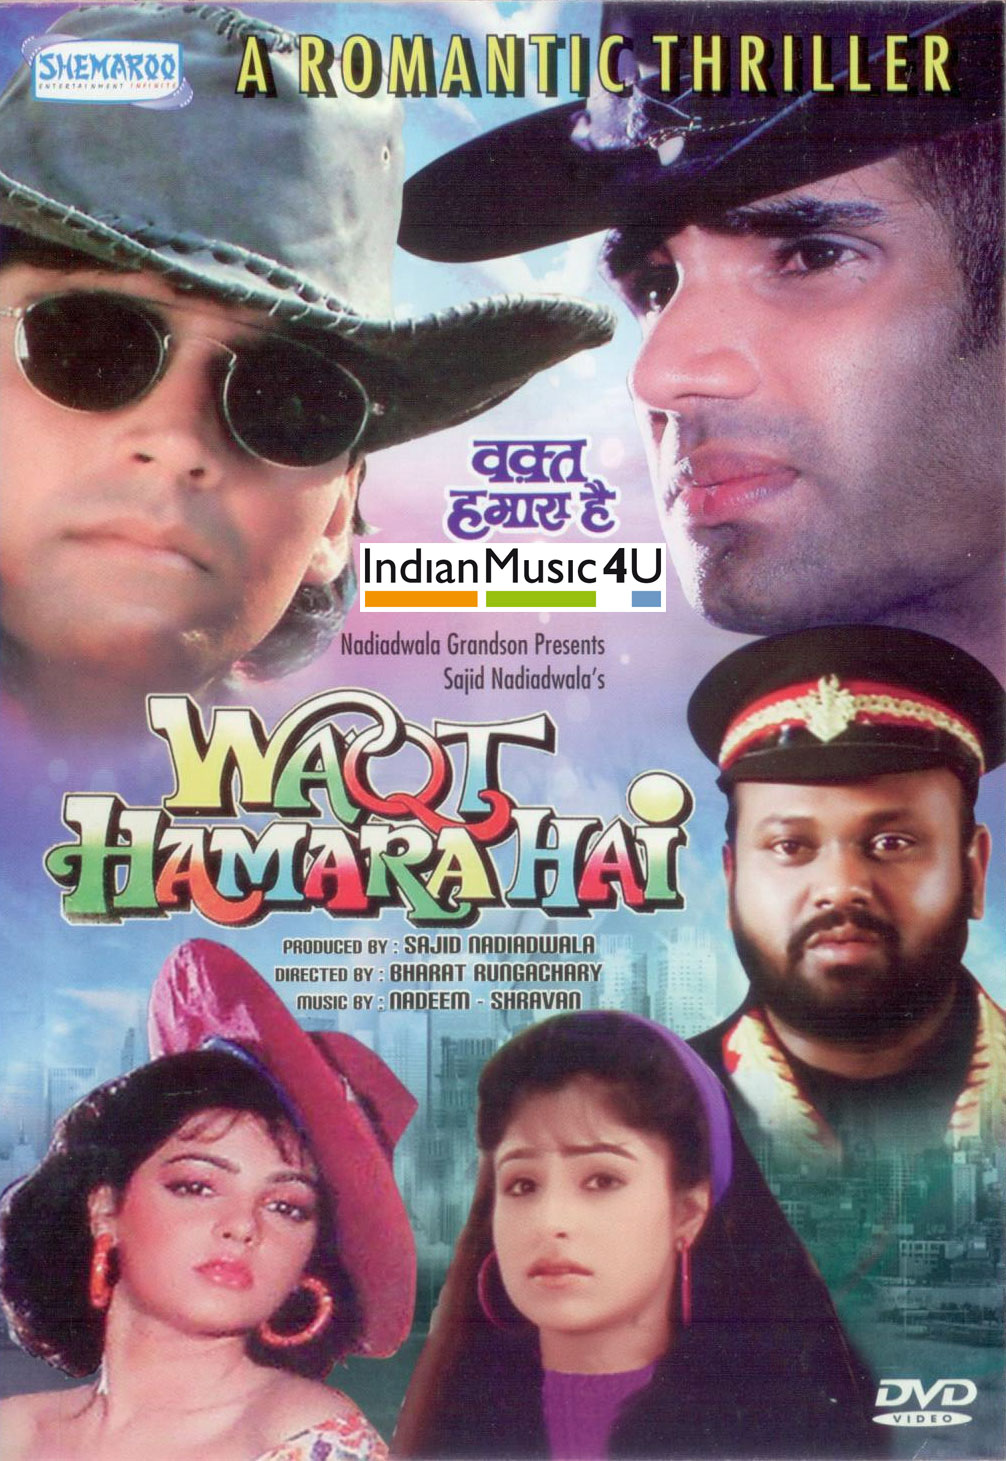 Waqt Hamara Hai (1993) Hindi 720p HDRip x264 1.2GB